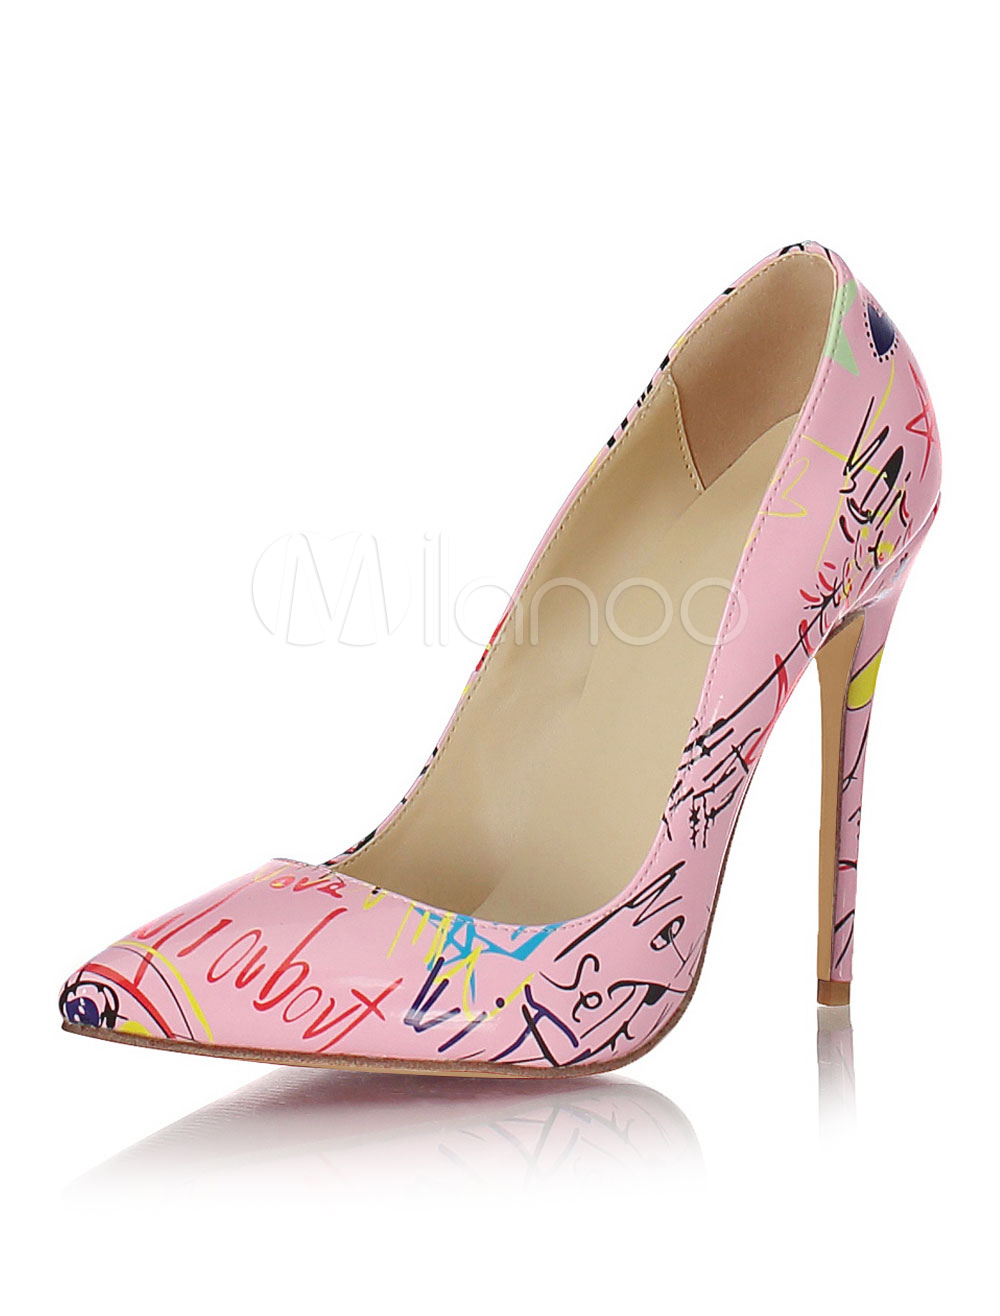 Buy Pink High Heels Women Shoes Pointed Toe Printed Slip On Pumps for $65.69 in Milanoo store